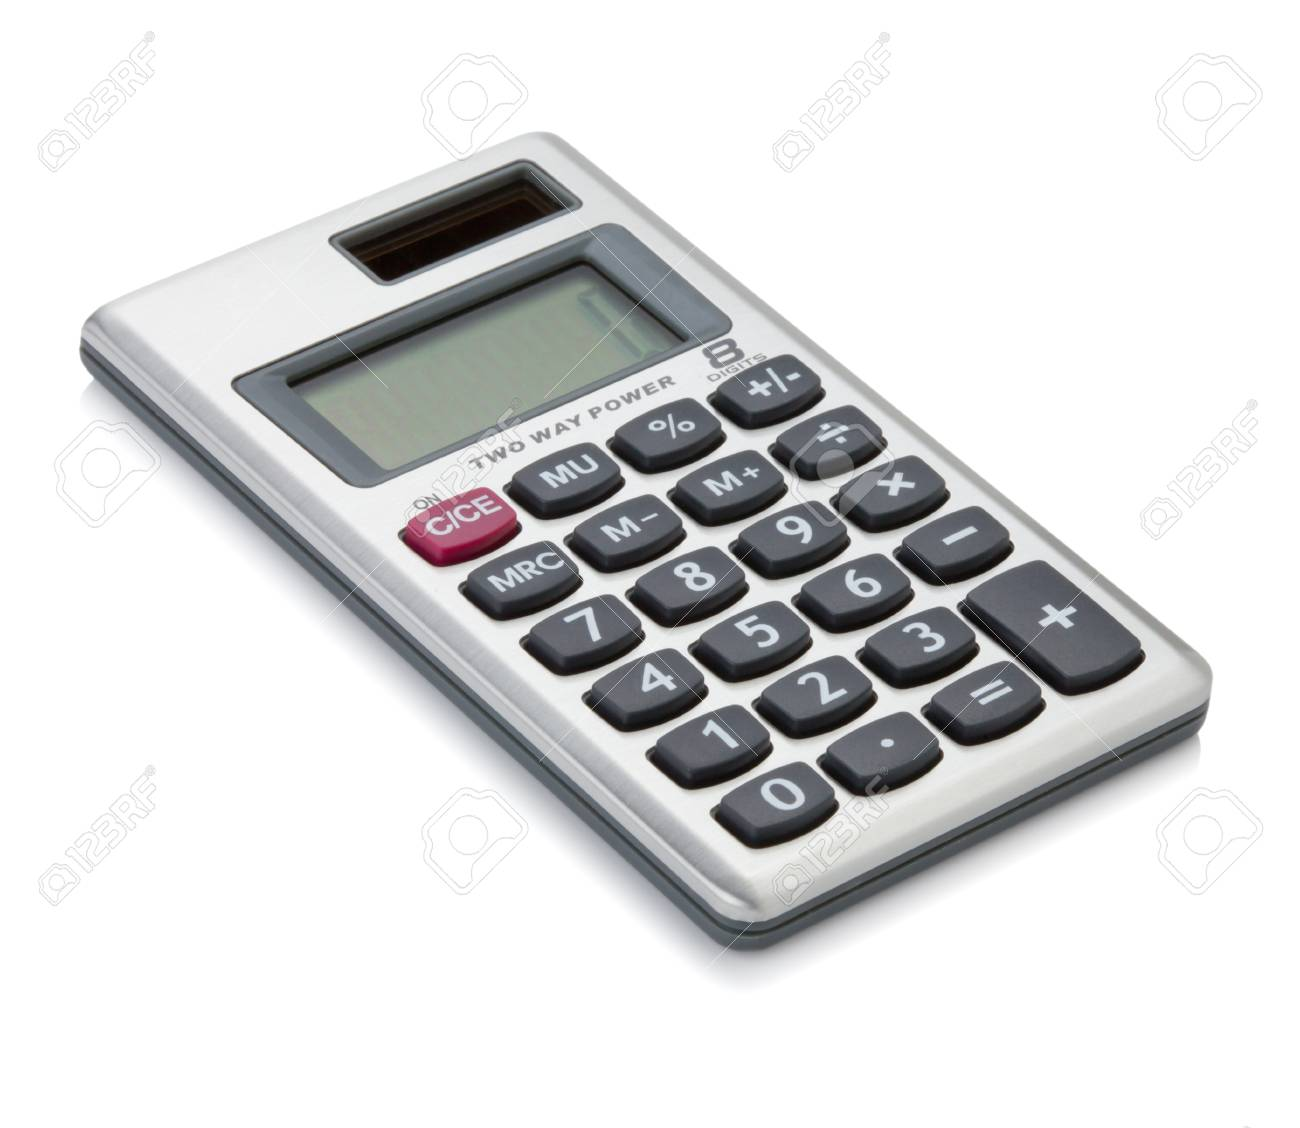 Small digital calculator. Isolated on white backgound Stock Photo - 9103933